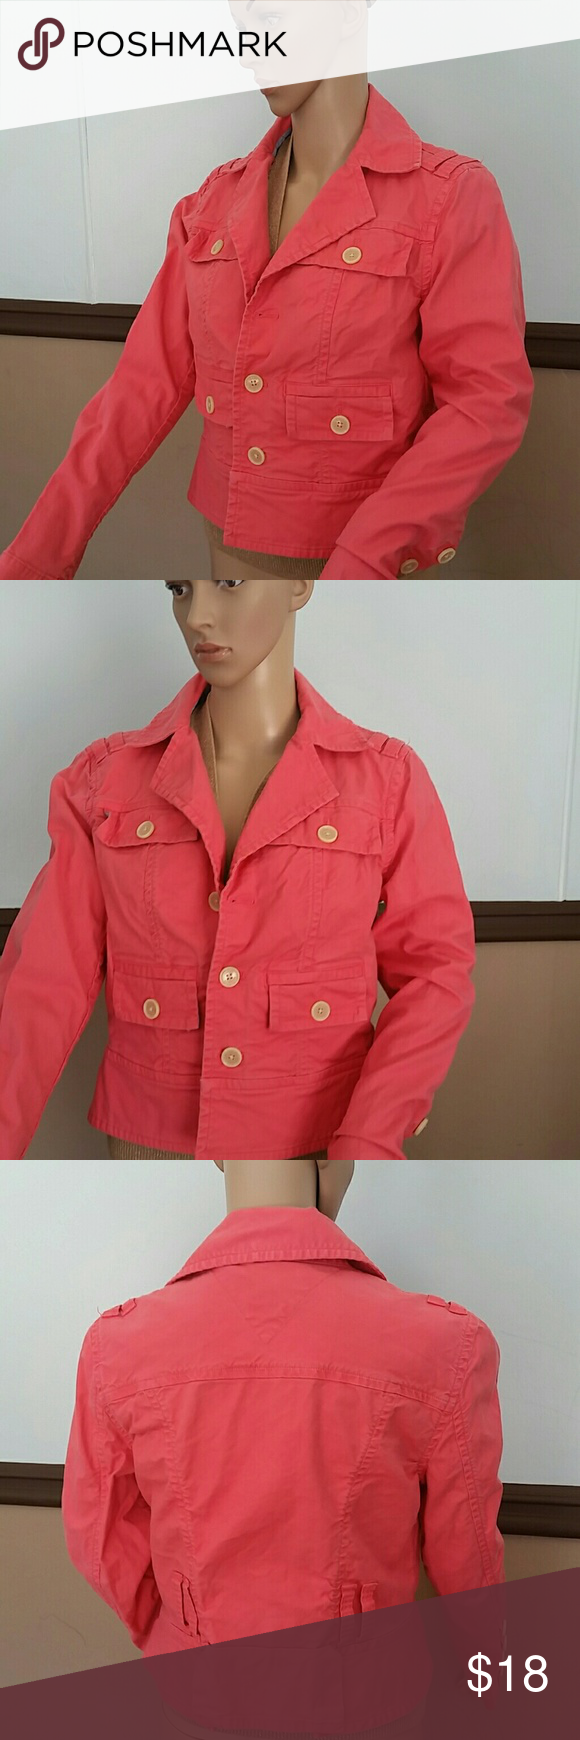 Tommy Hilfiger jacket Perfect condition no stains or rips Tommy Hilfiger Jackets & Coats